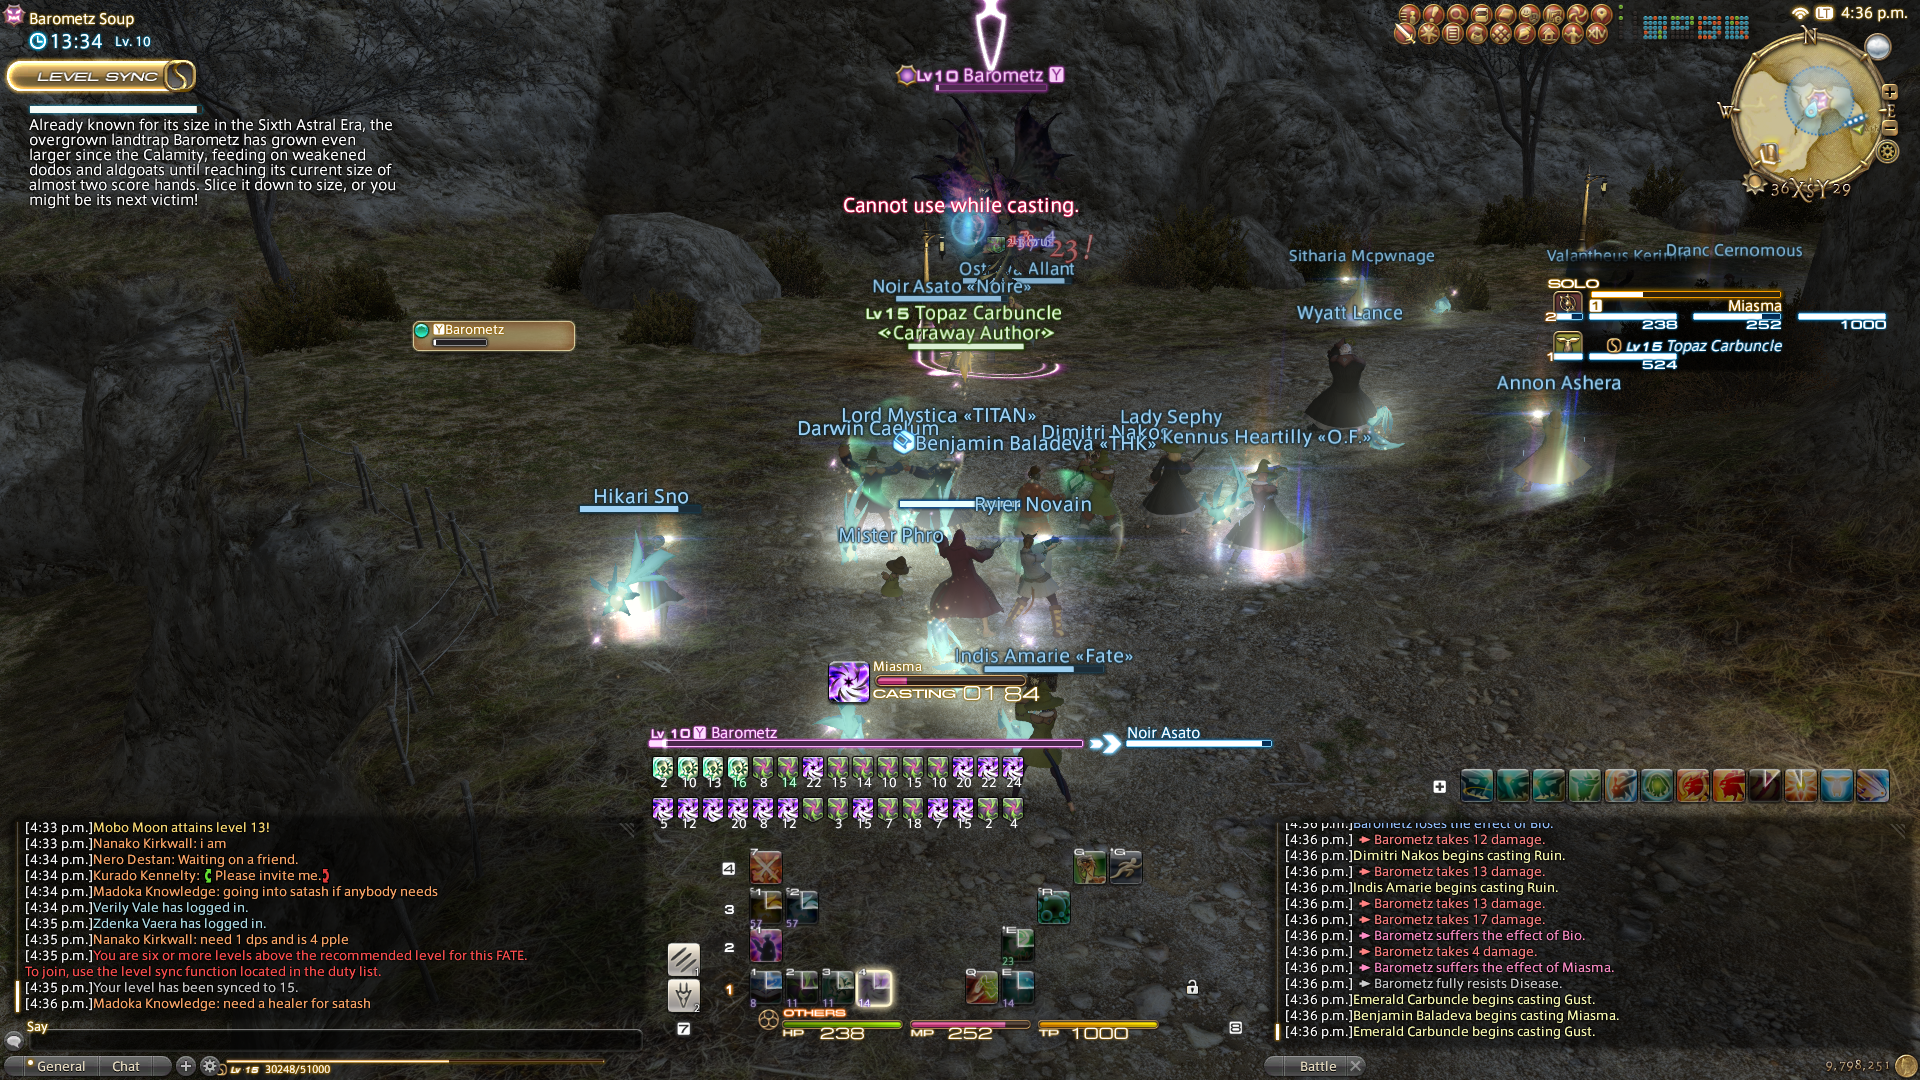 carraway ffxiv make petbar command toggle your visibility pictures remember anyone post know